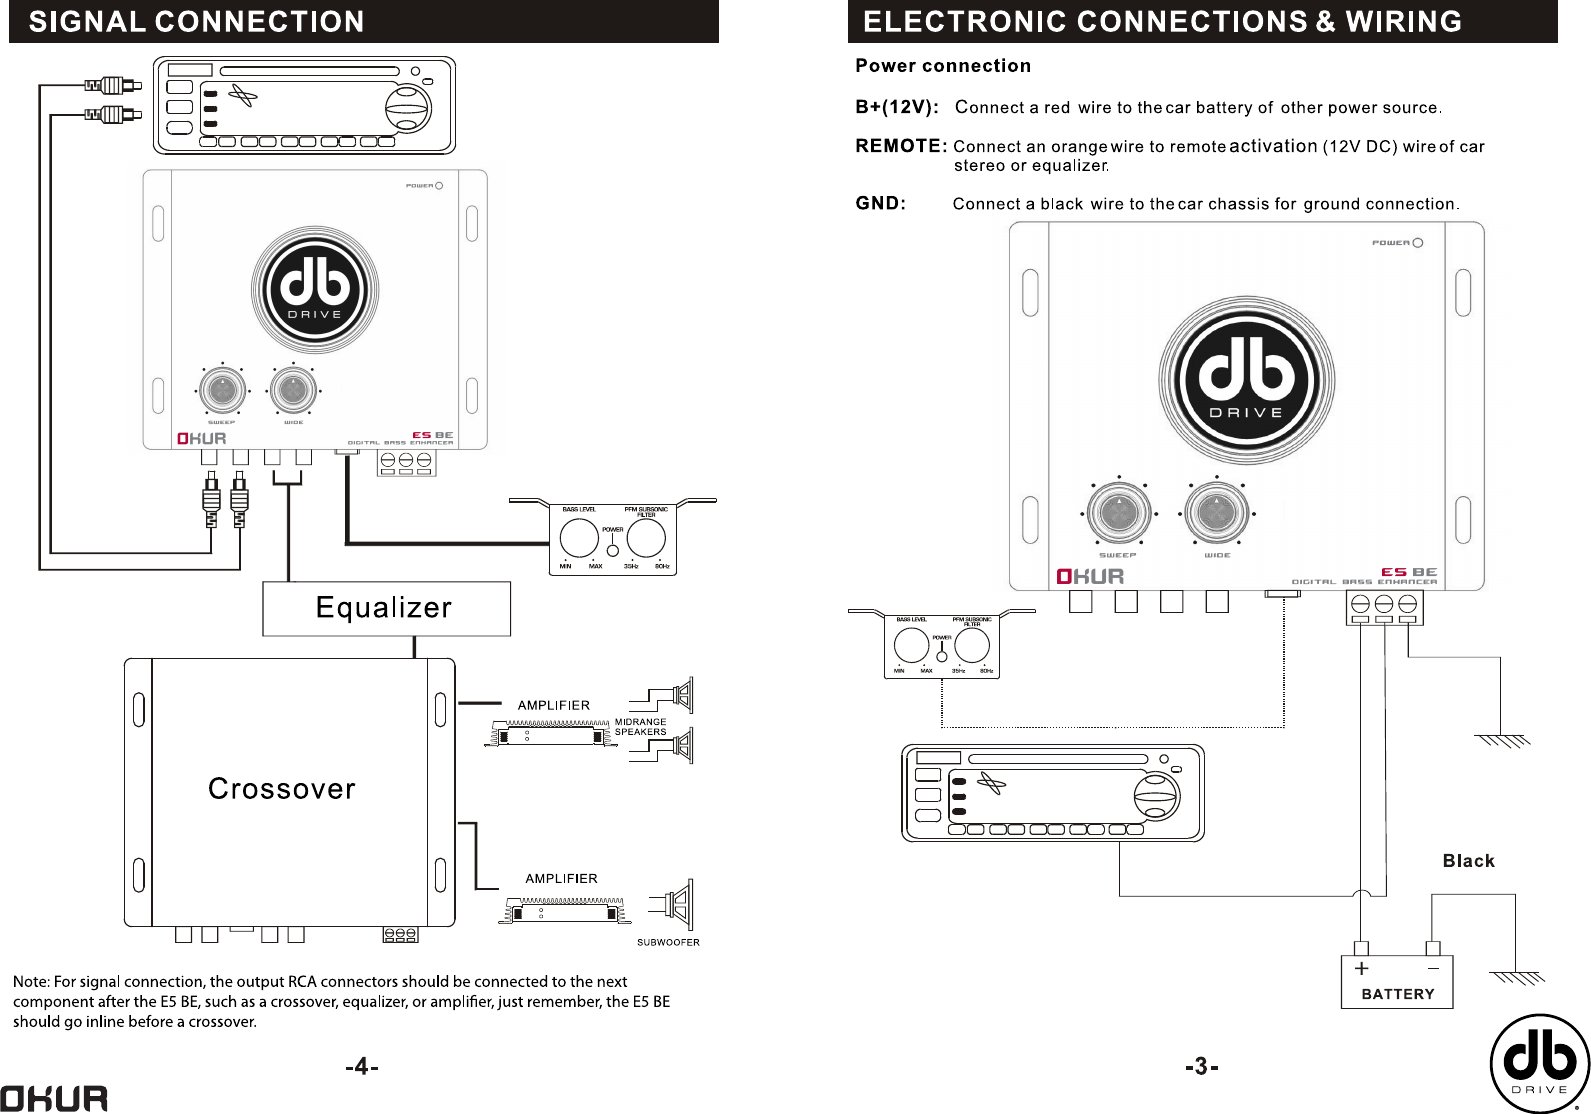 Db Drive Okur E5 Be Users Manual Rmb 11 Amp Wiring Diagram Page 4 Of